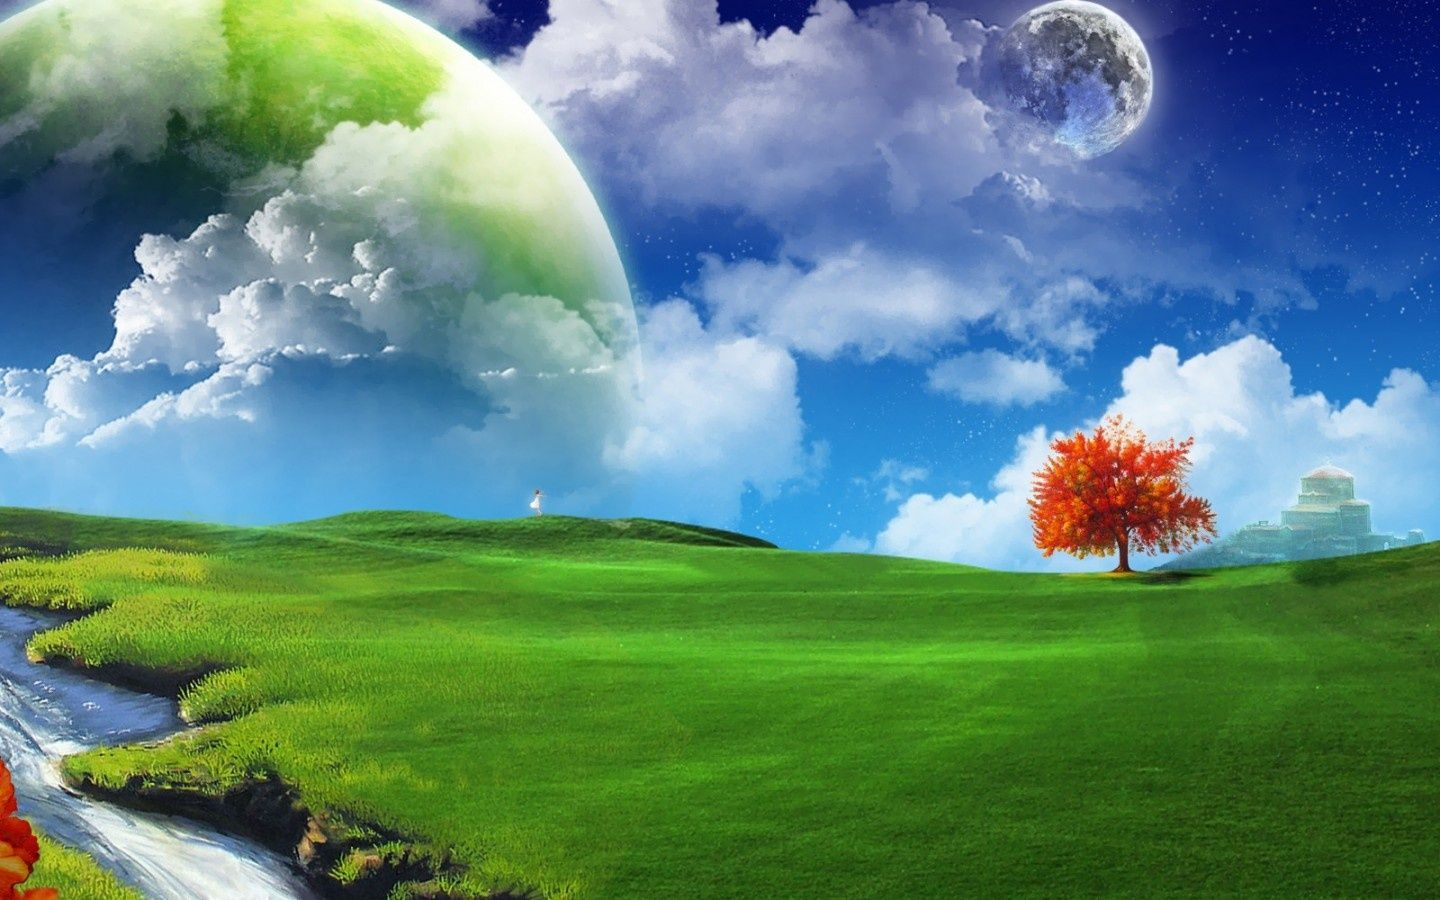 Hd wallpaper nature 3d - Nature 3d Iphone Wallpapers Nature 3d Background